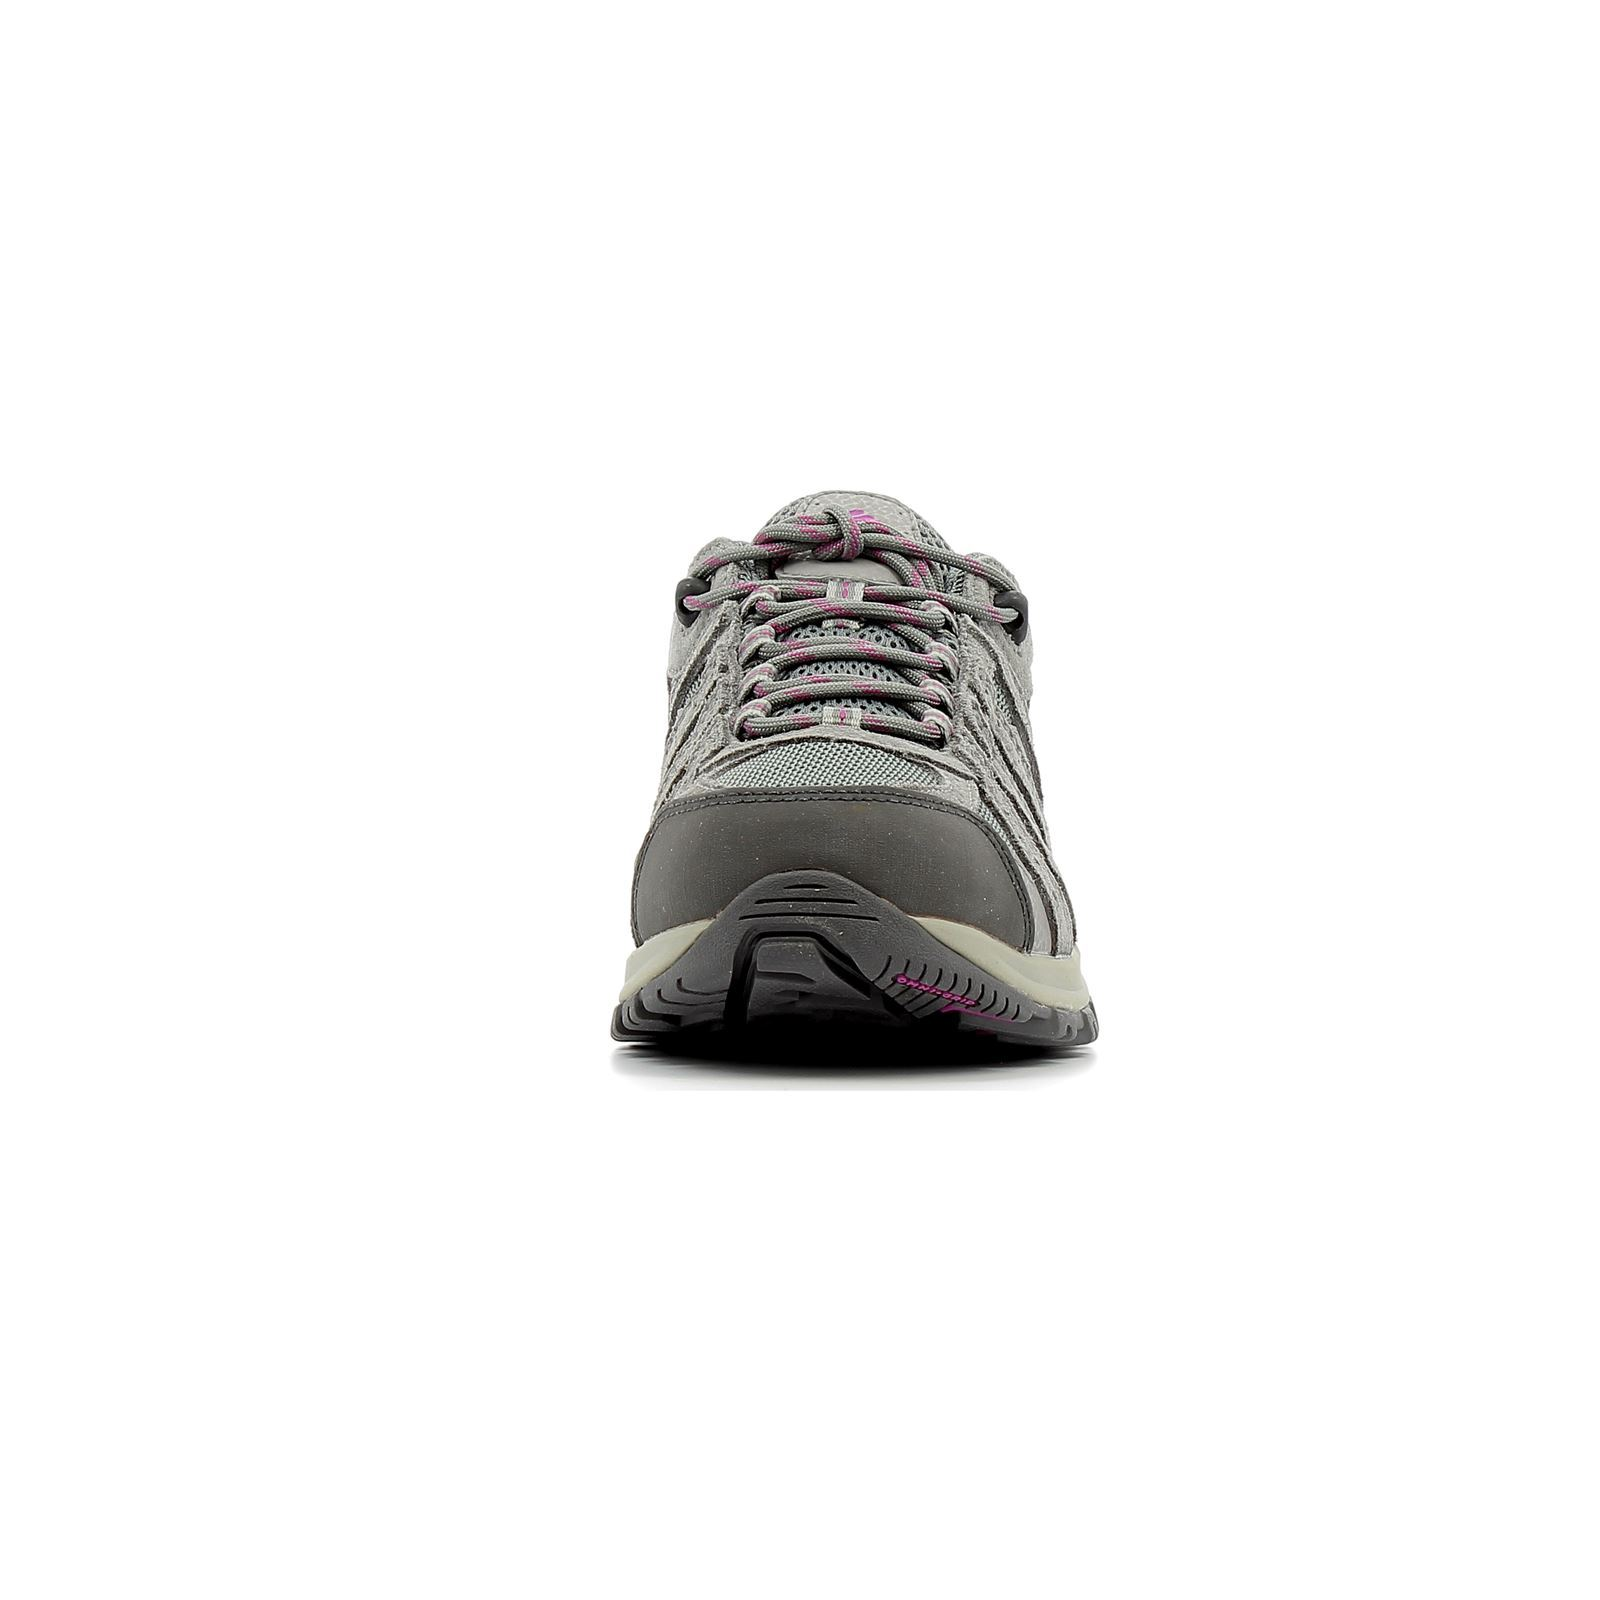 Waterproof Dcboex Femme Chaussures De Columbia Canyon Point f6yY7vbg